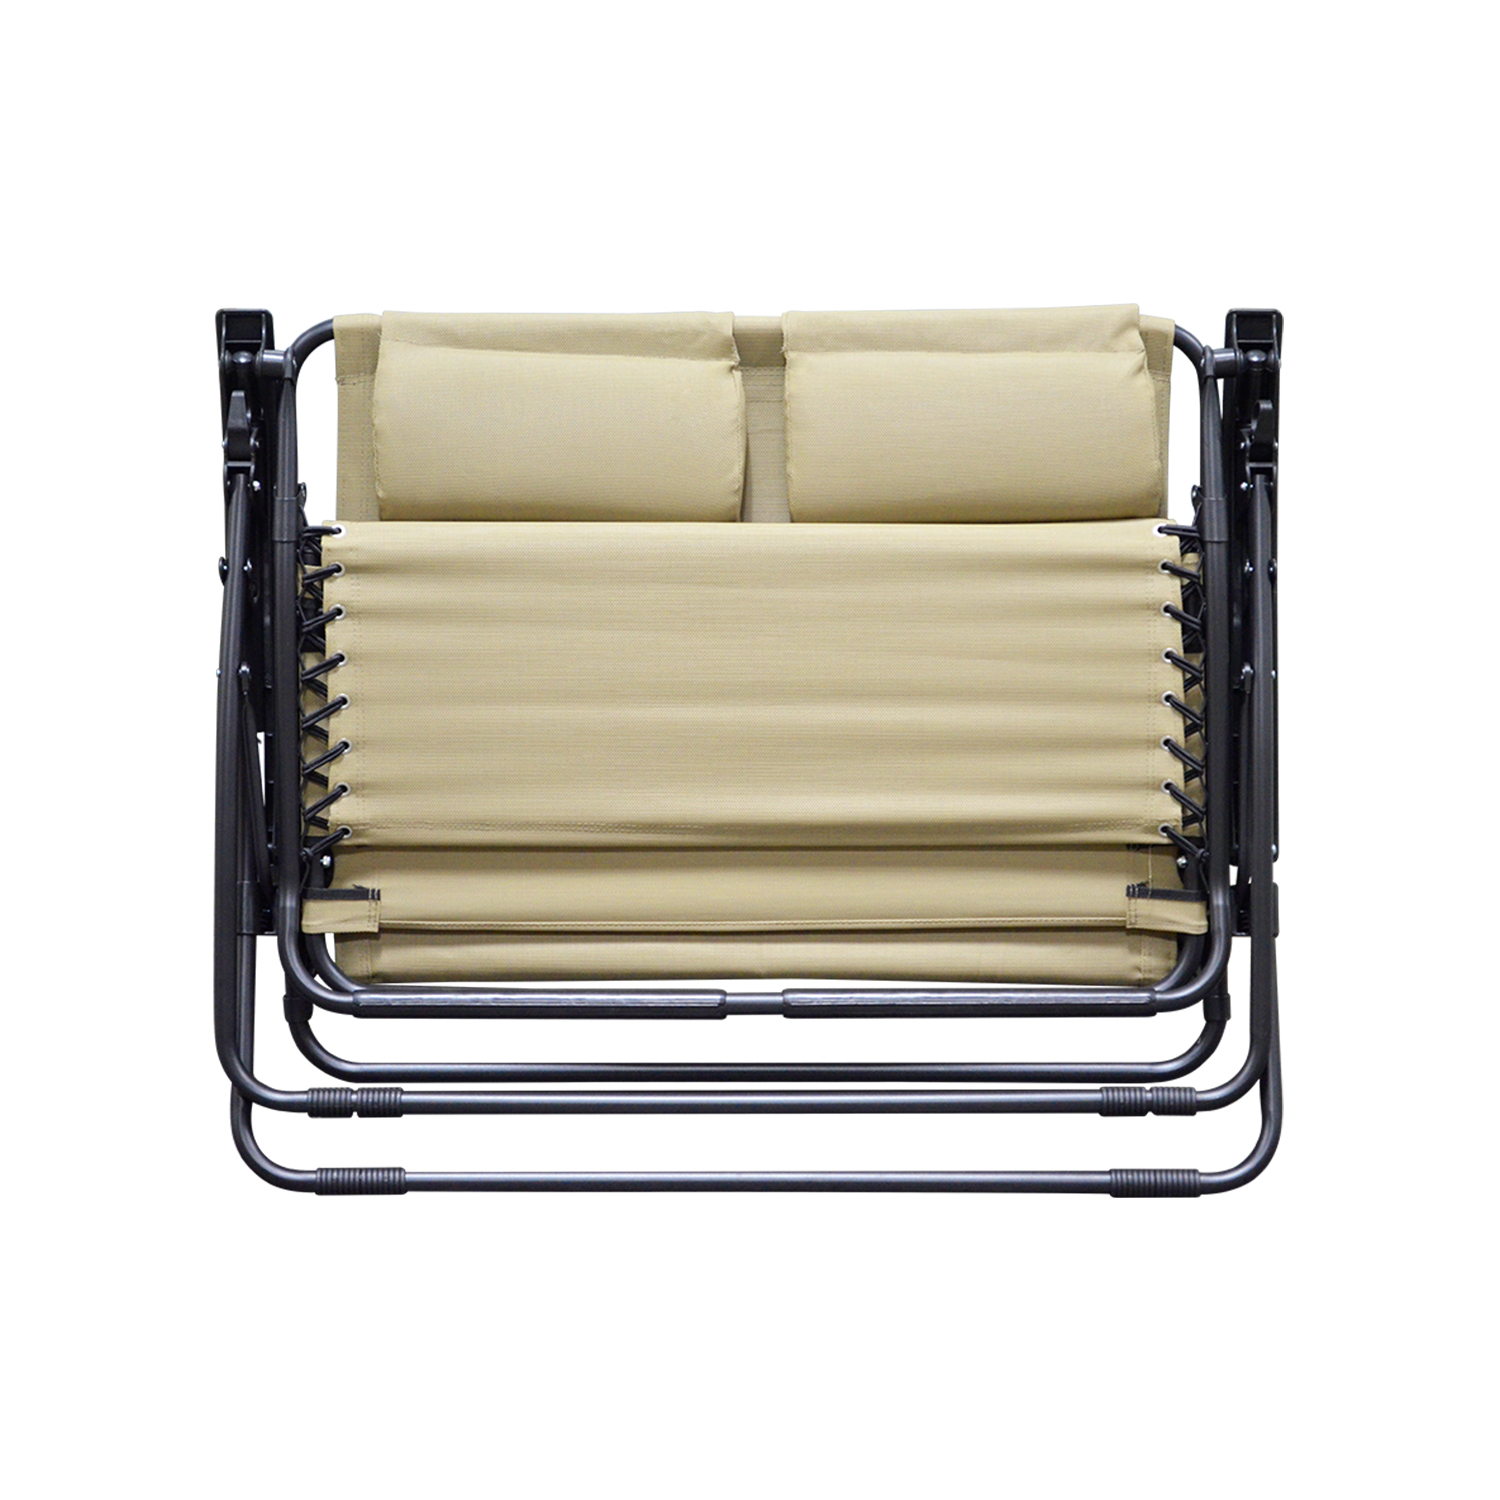 Infinity Loveseat Zero Gravity Chair * Caravan Canopy